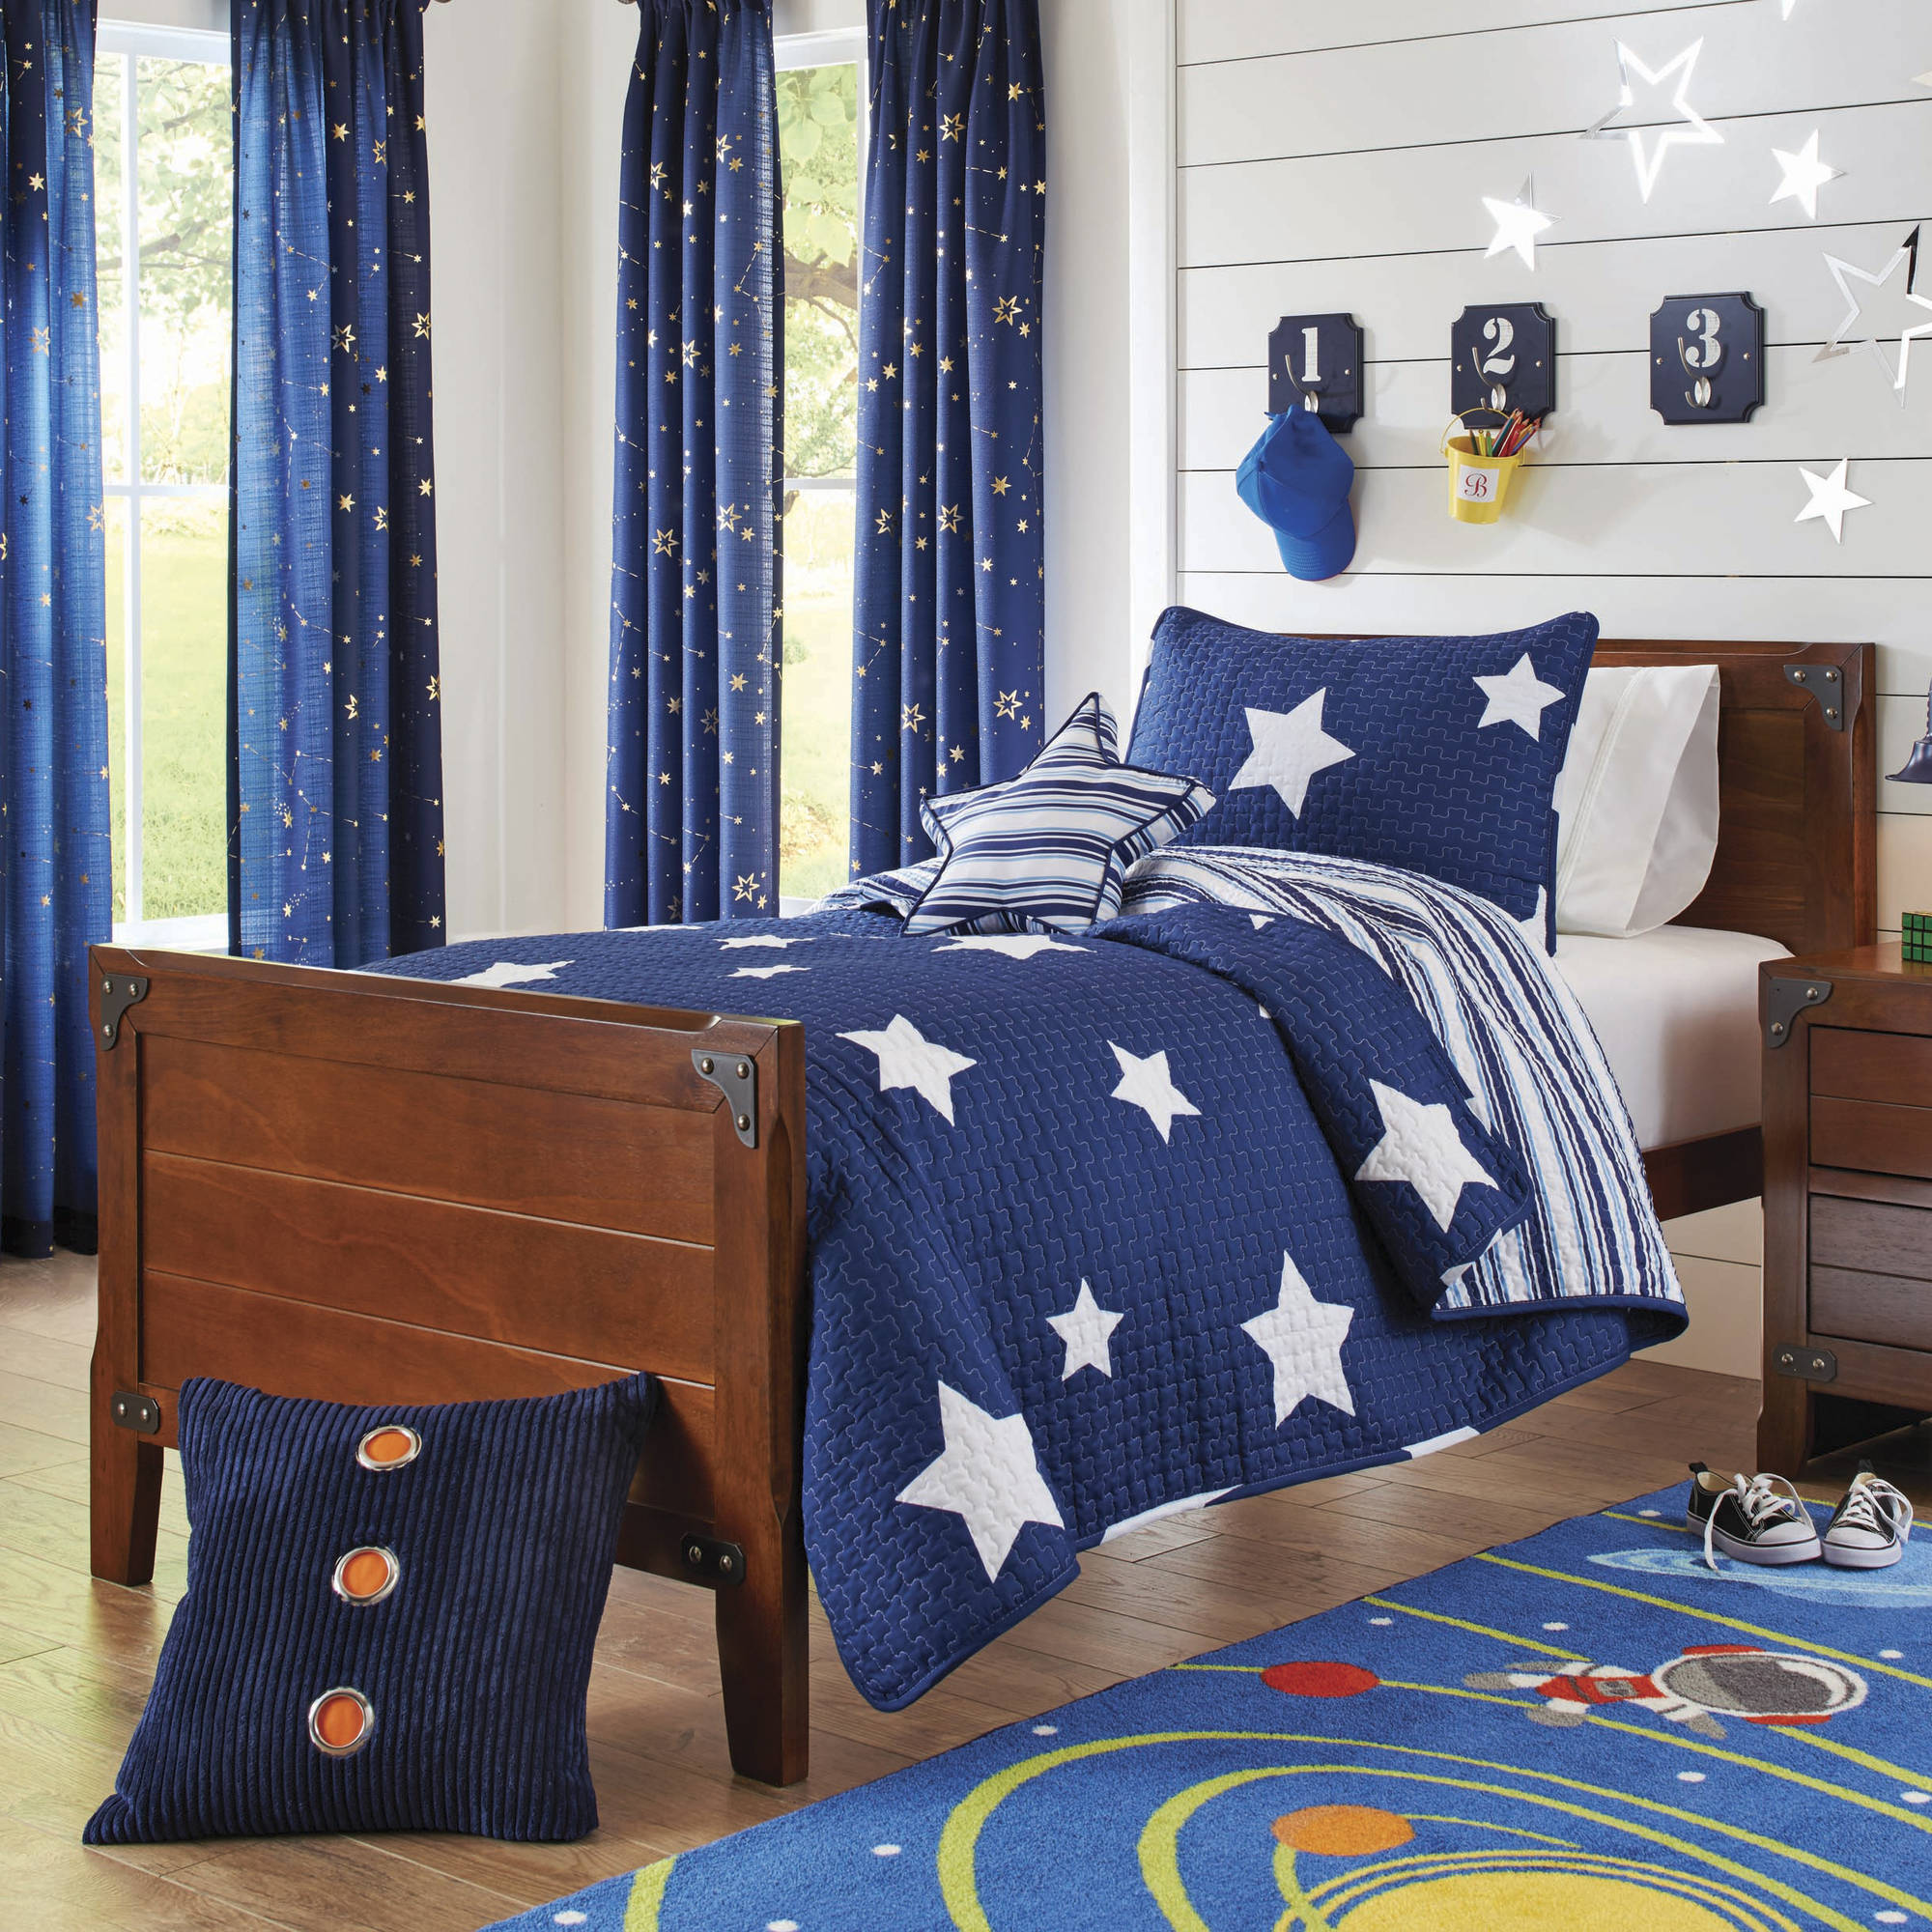 basketball bedroom sets. Basketball Bedroom Furniture images   A1houston com